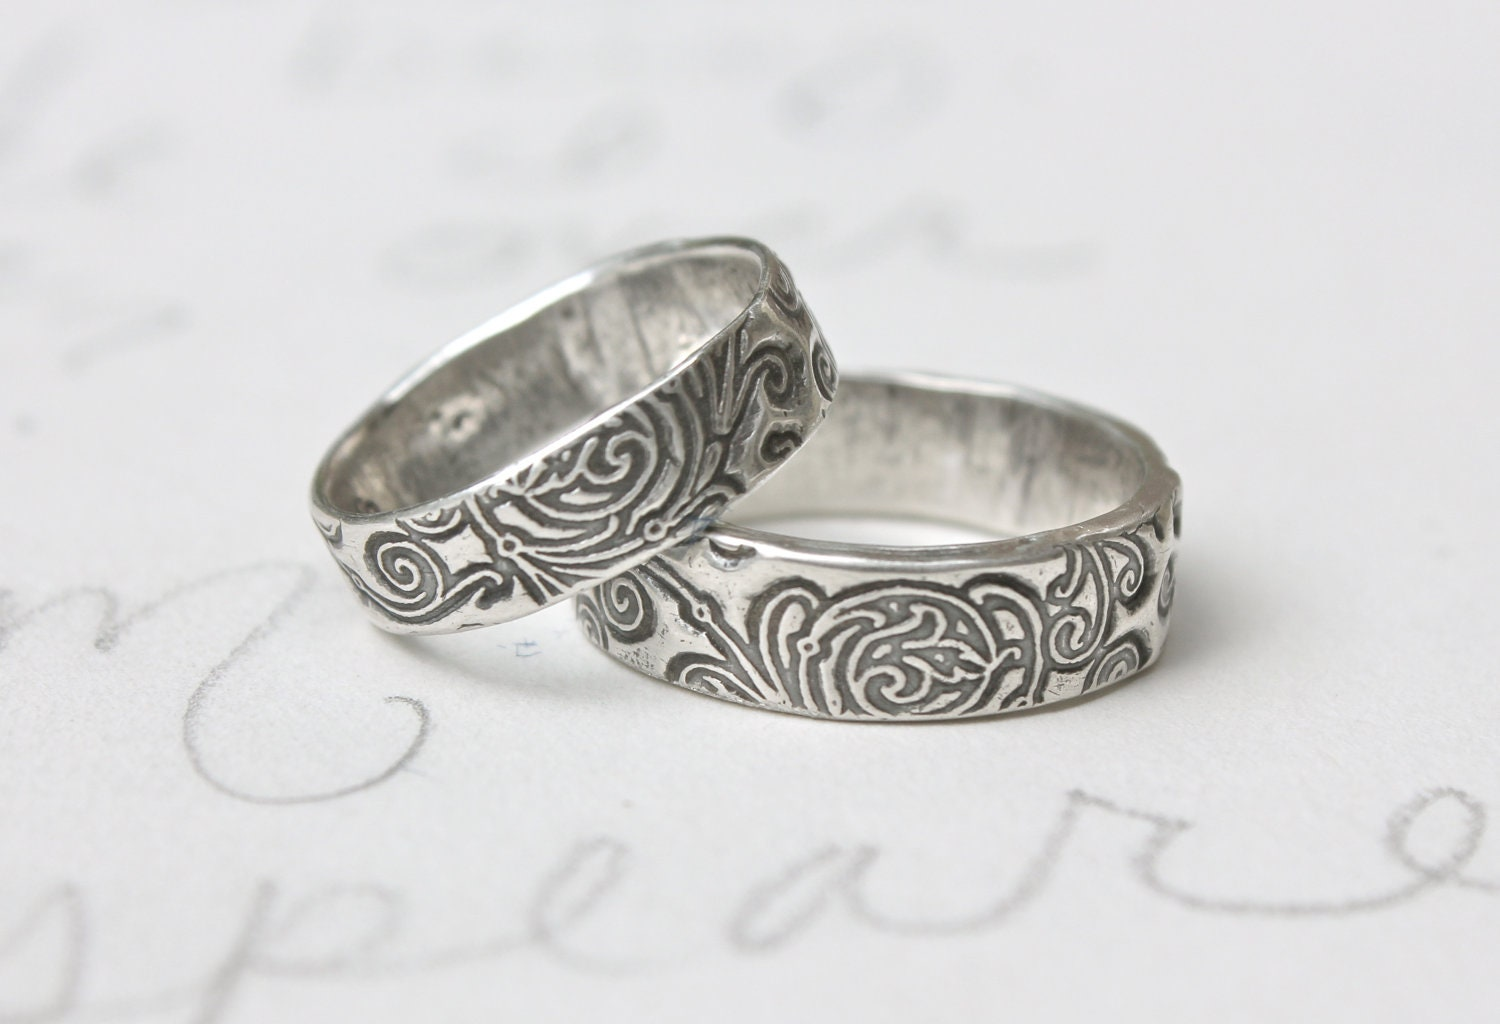 sle sale silver wedding band scroll engraved once upon